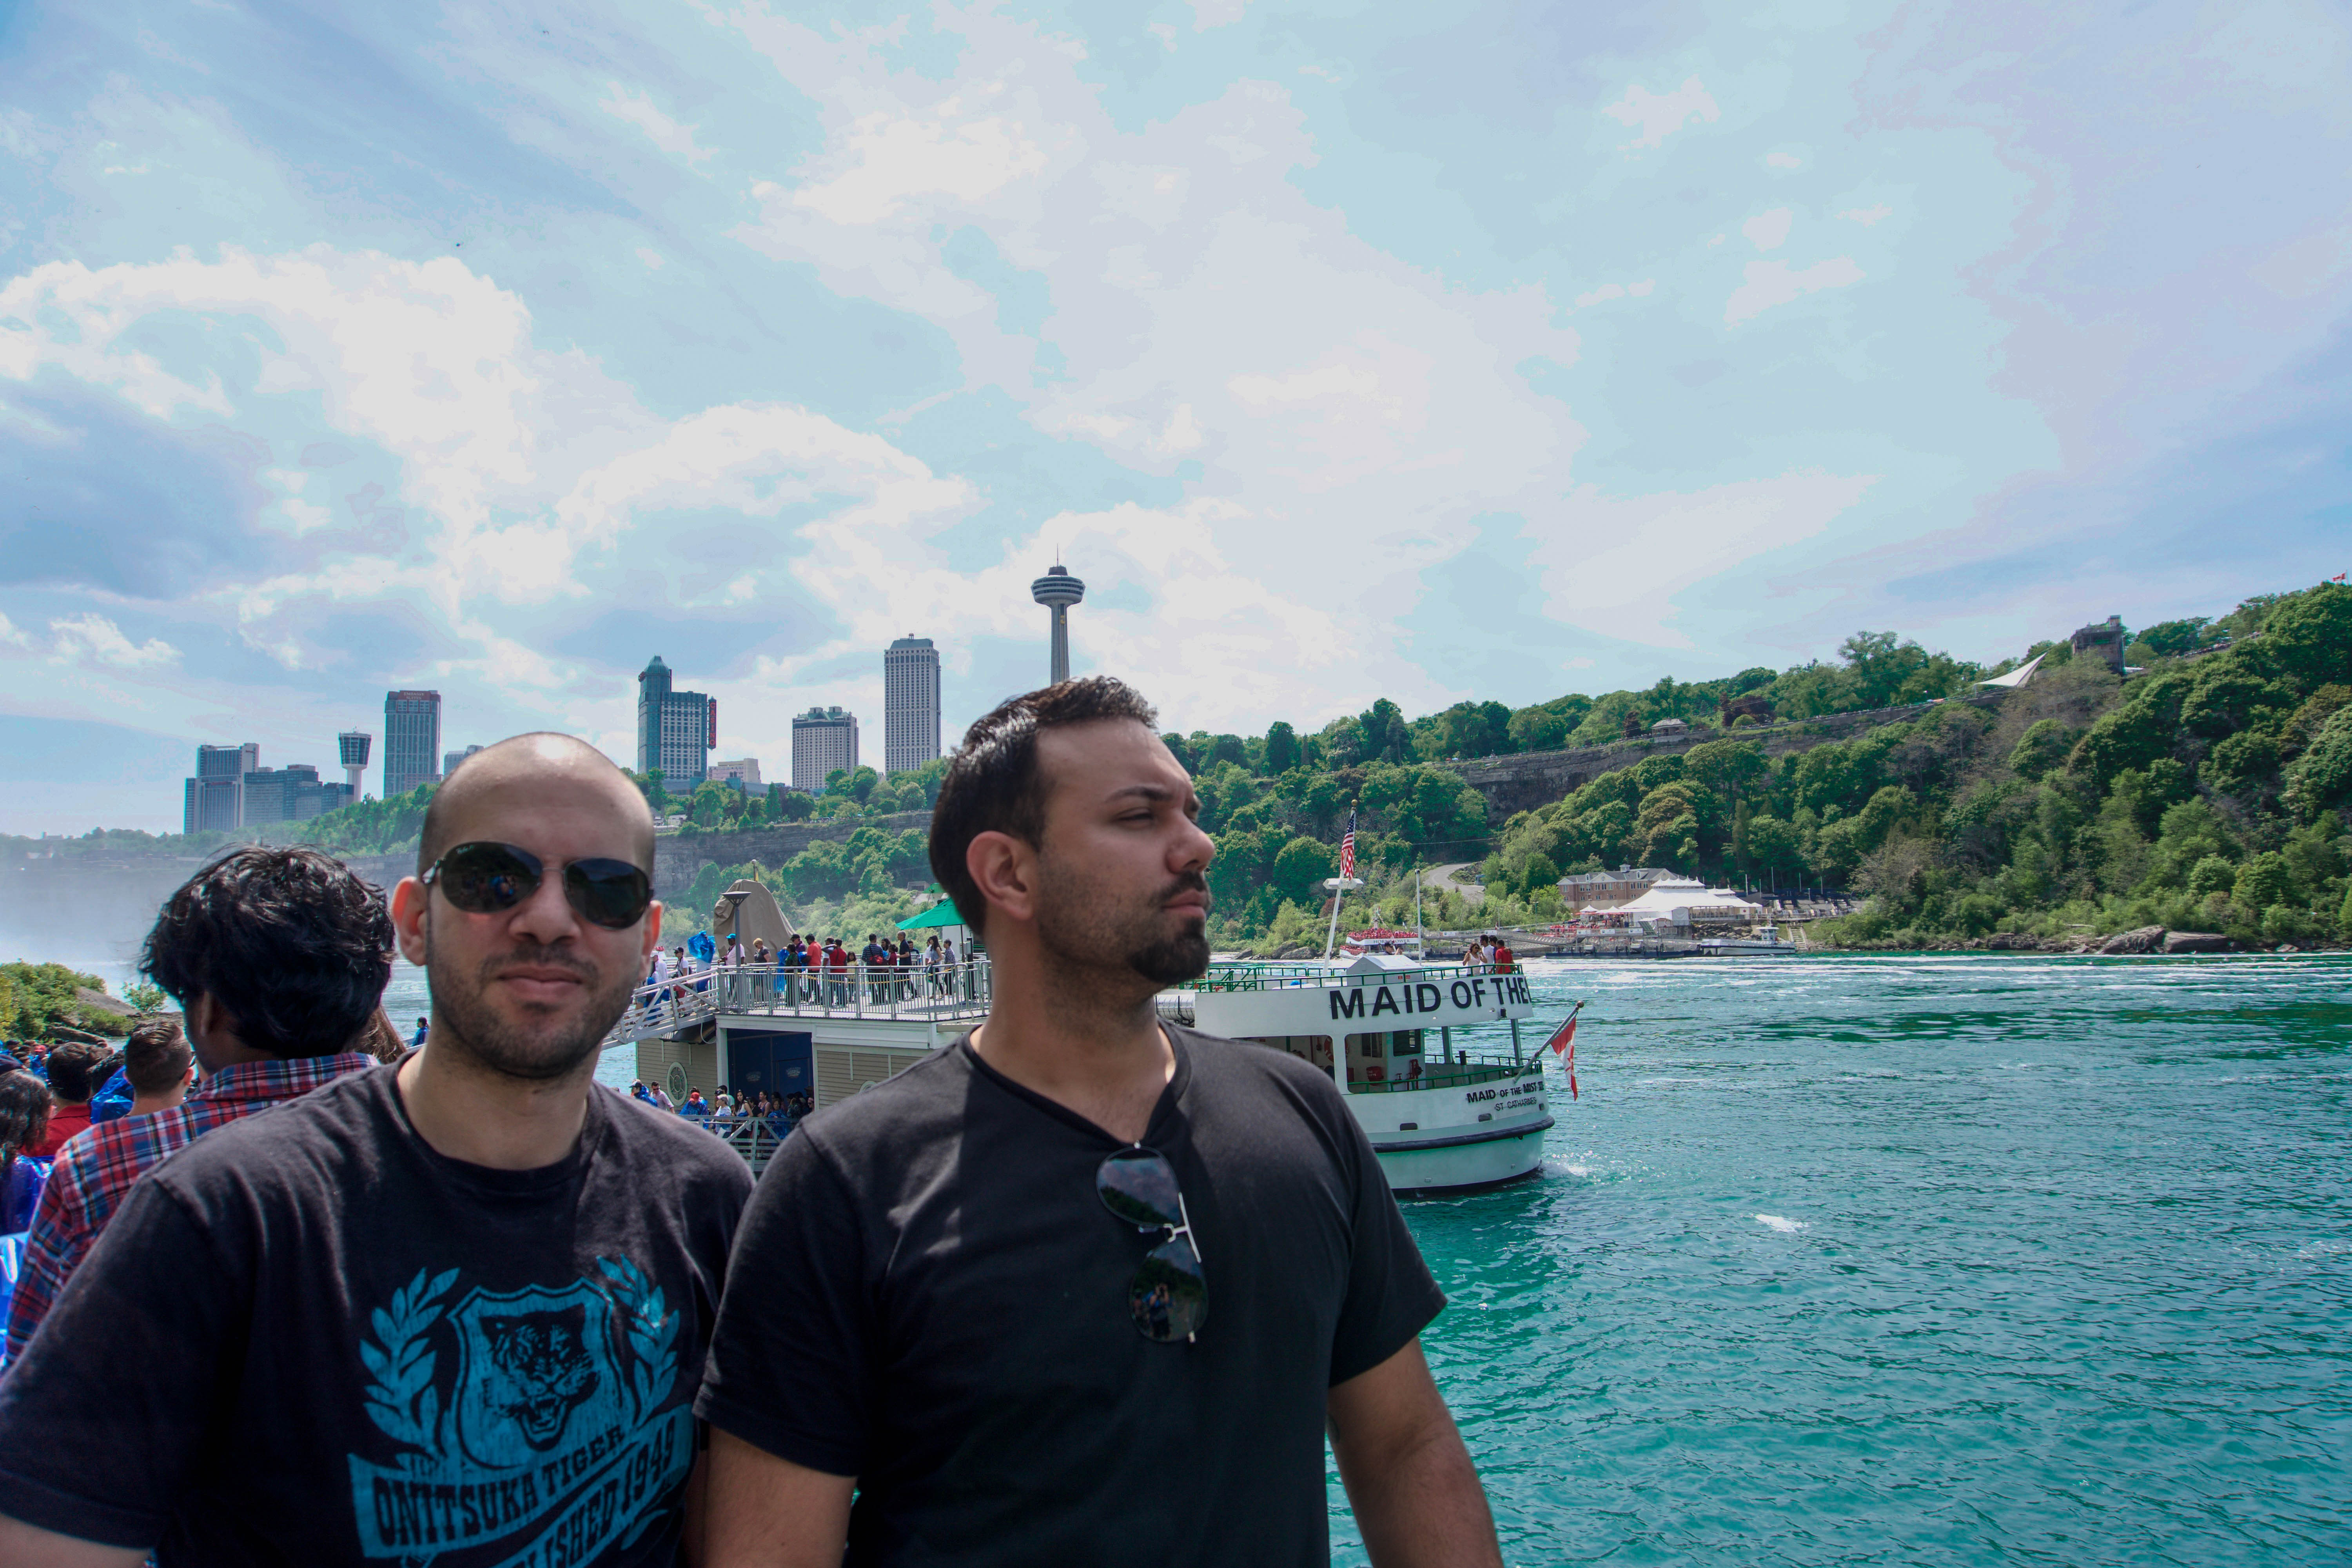 Captains of the Maid of the Mist